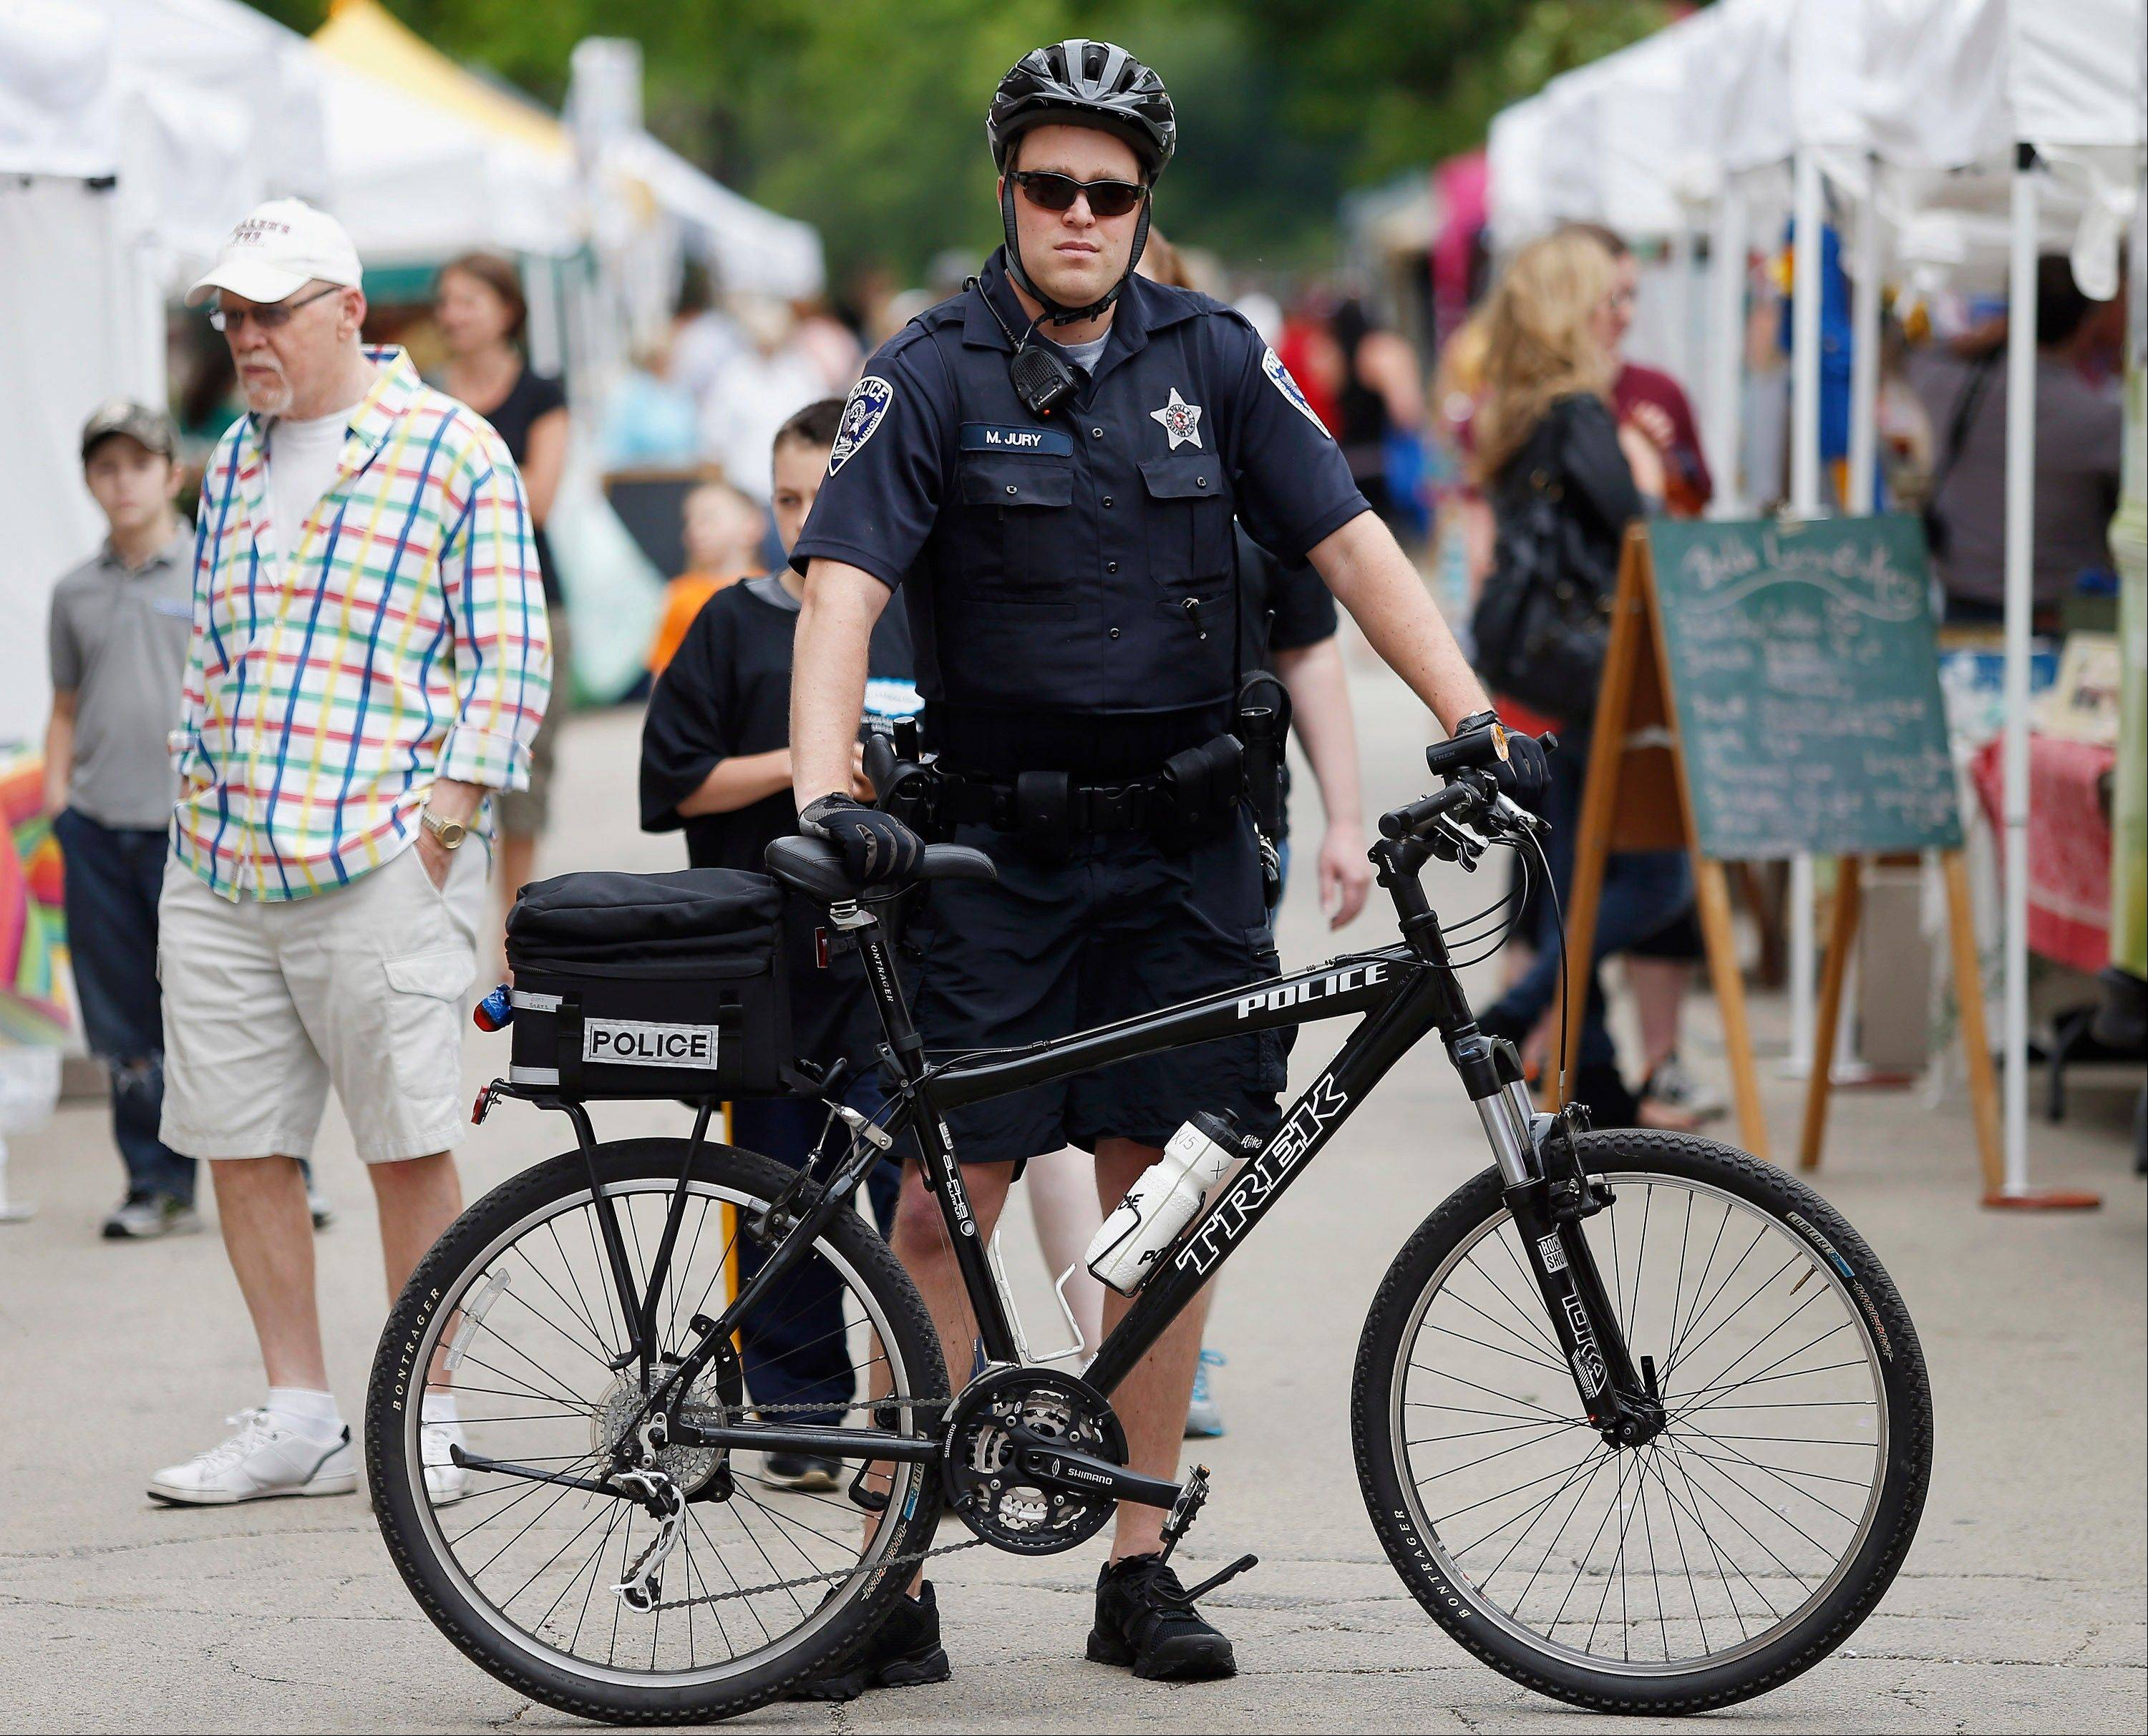 Associated Press Rockford Police Officer Mike Jury stands with his bike at the entrance of the City Market in downtown Rockford.